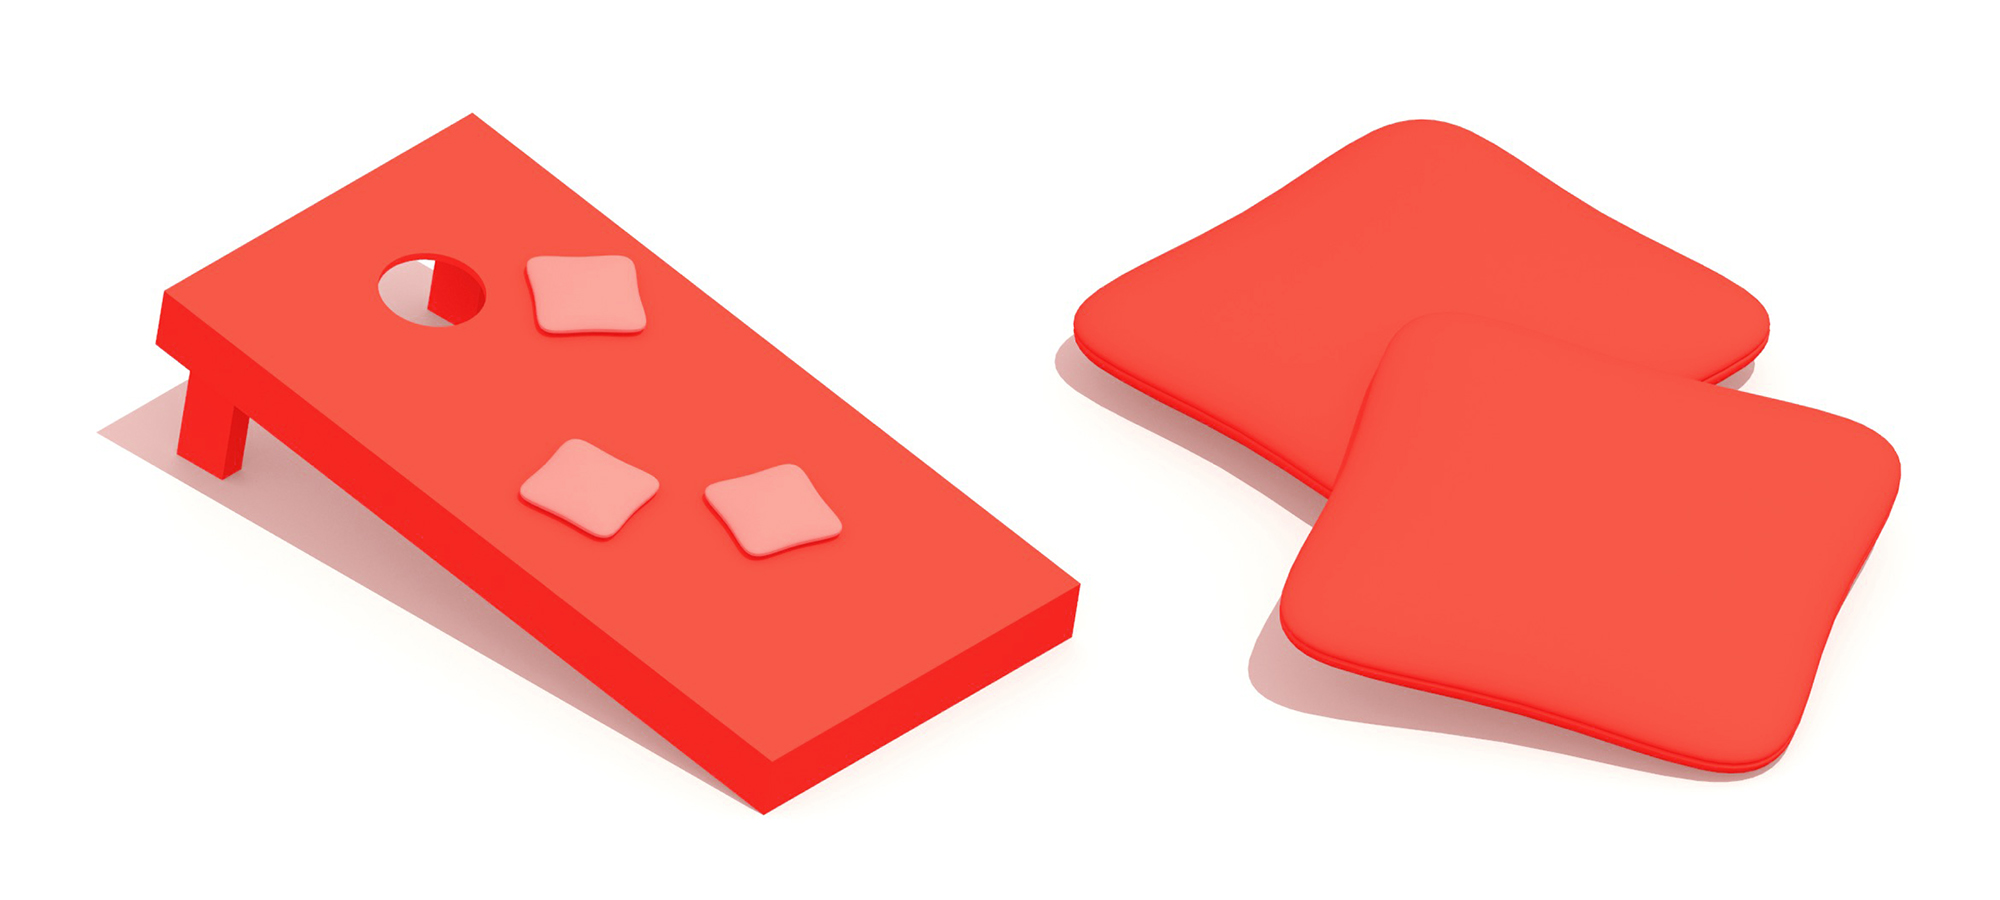 Collection of 3D Cornhole equipment including cornhole boards and cornhole bags